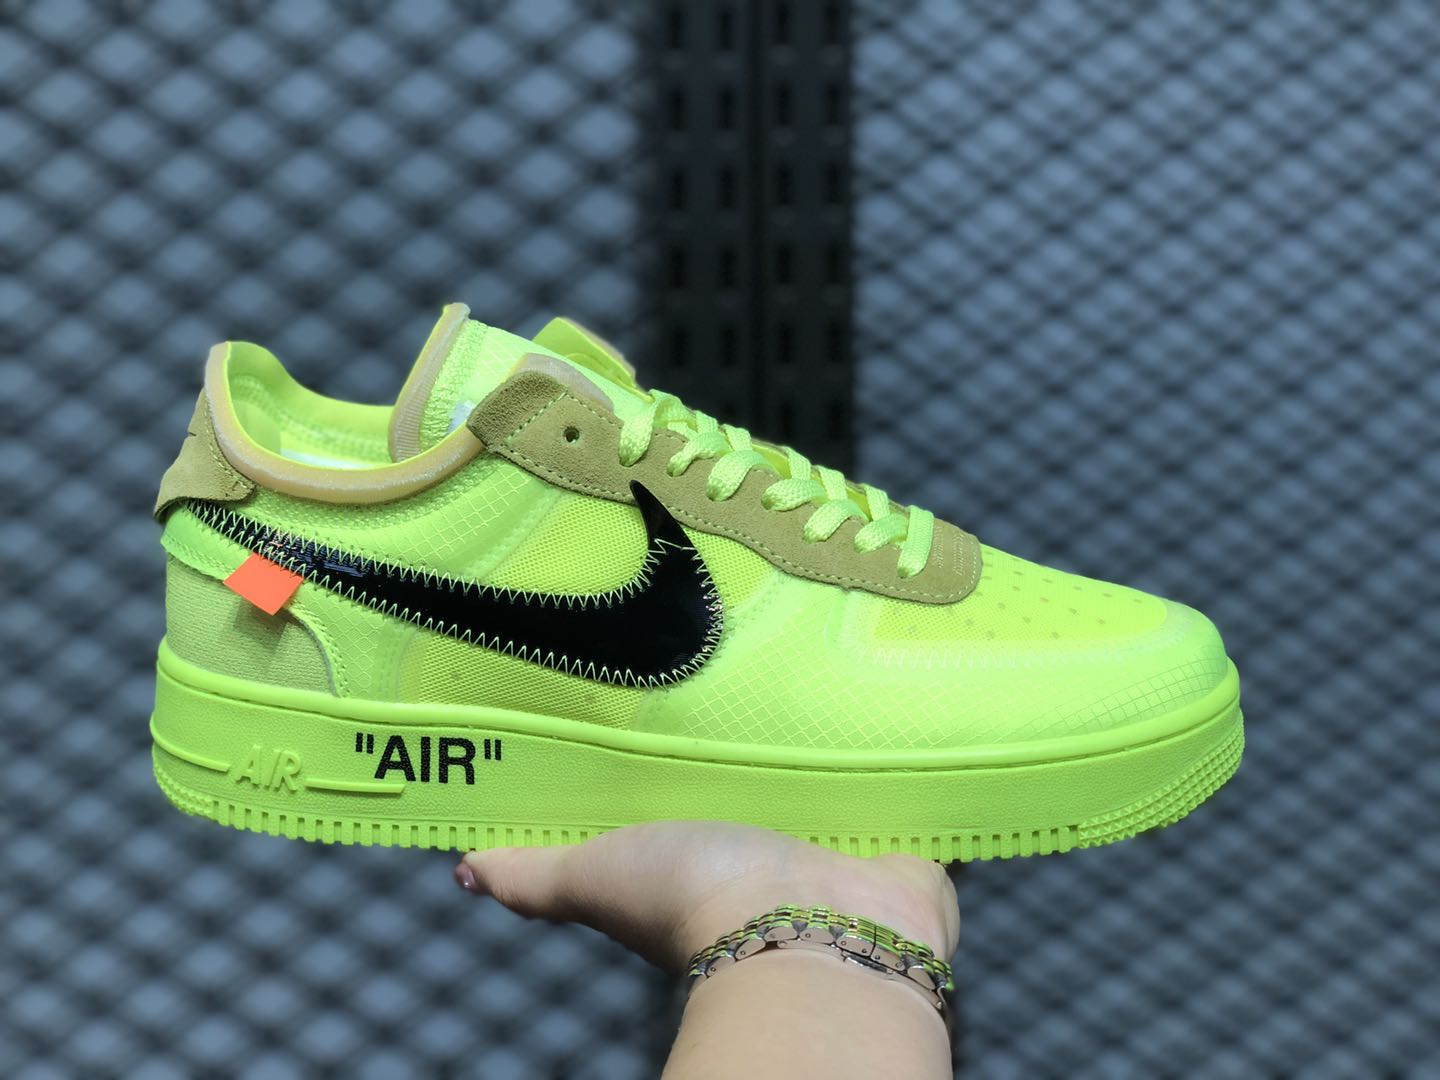 Off-White x Nike Air Force 1 Low AO4606